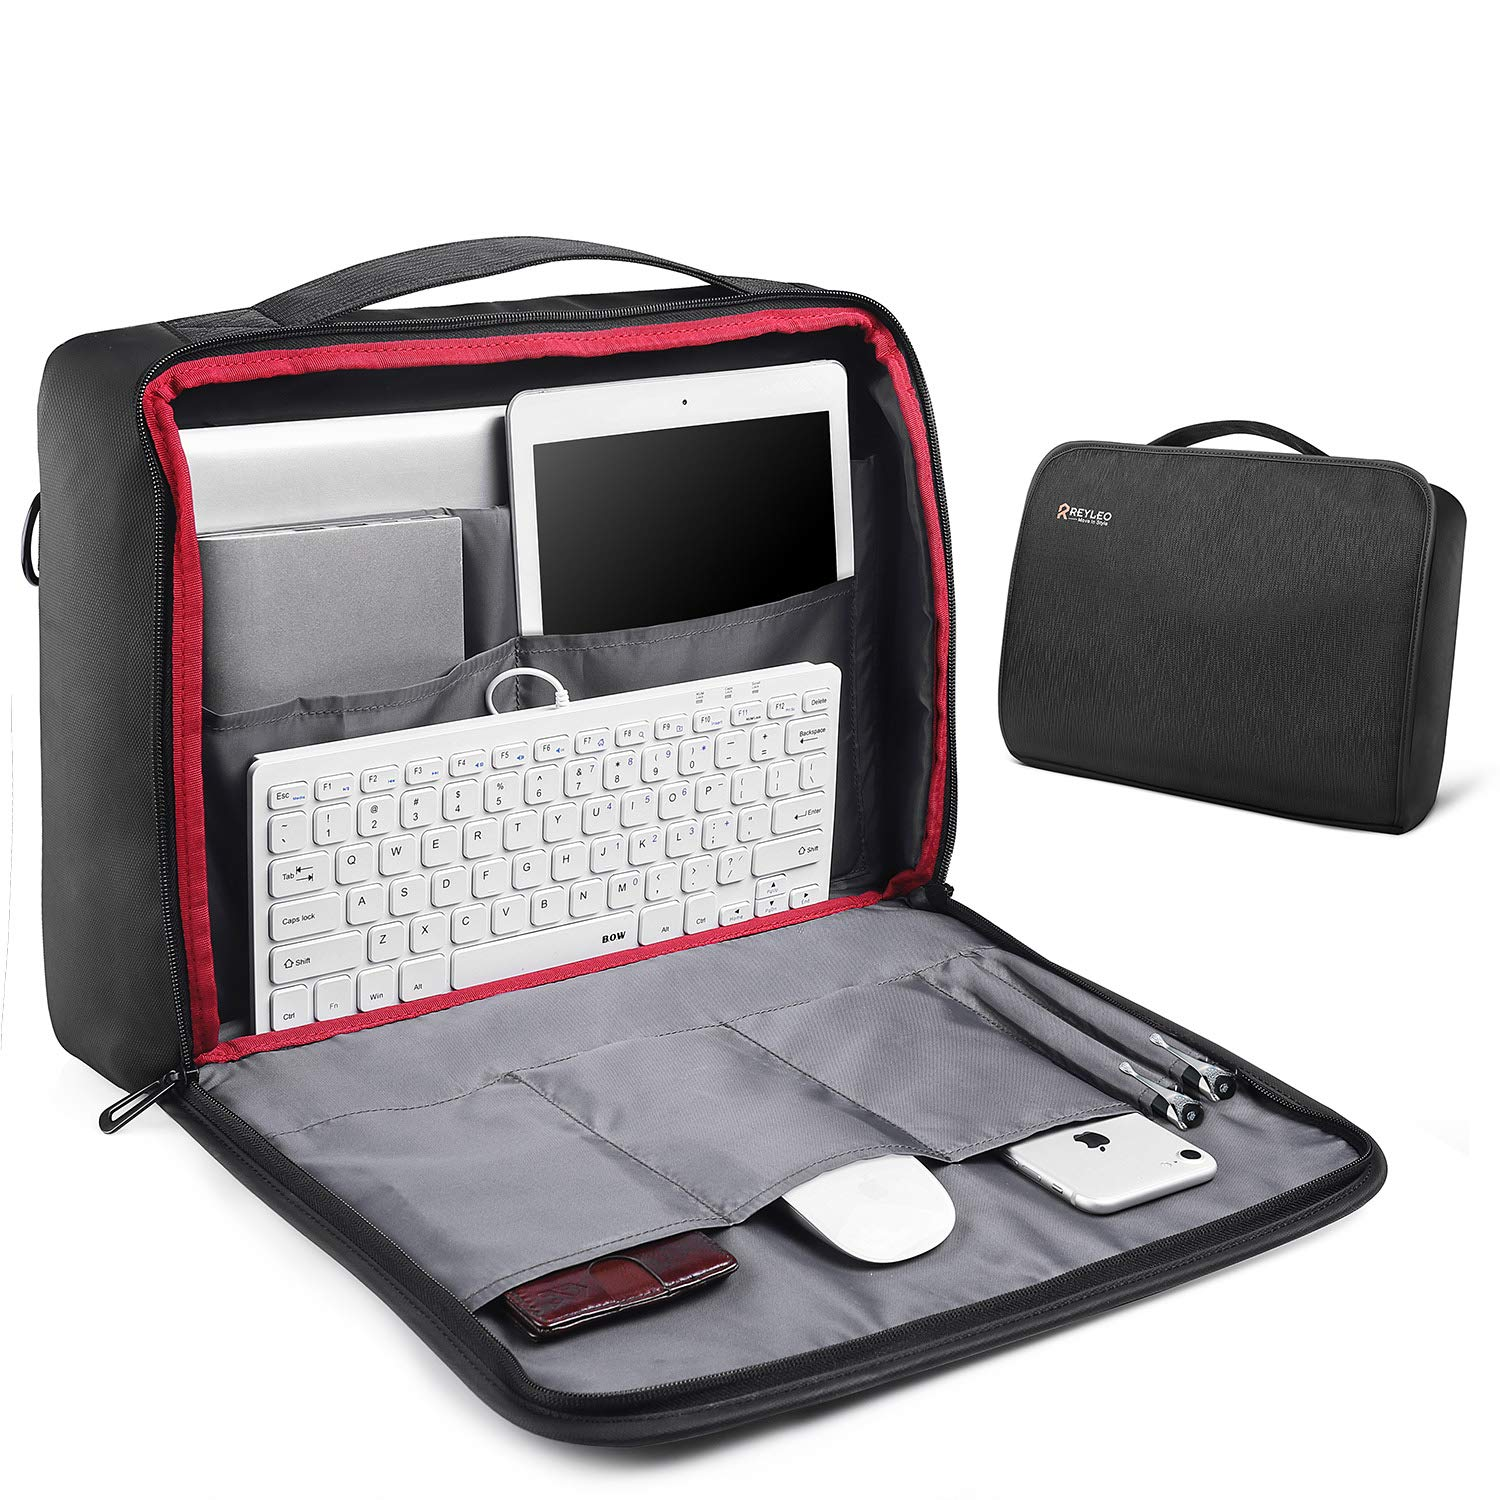 Water Resisatant Business Messenger Briefcases for Men Women Fits 15.6 Inch Laptop Computer Tablet LCB1A Travel Briefcase with 9+ Compartments REYLEO 15.6 Inch Laptop Bag 180/° Opens Shoulder Bag